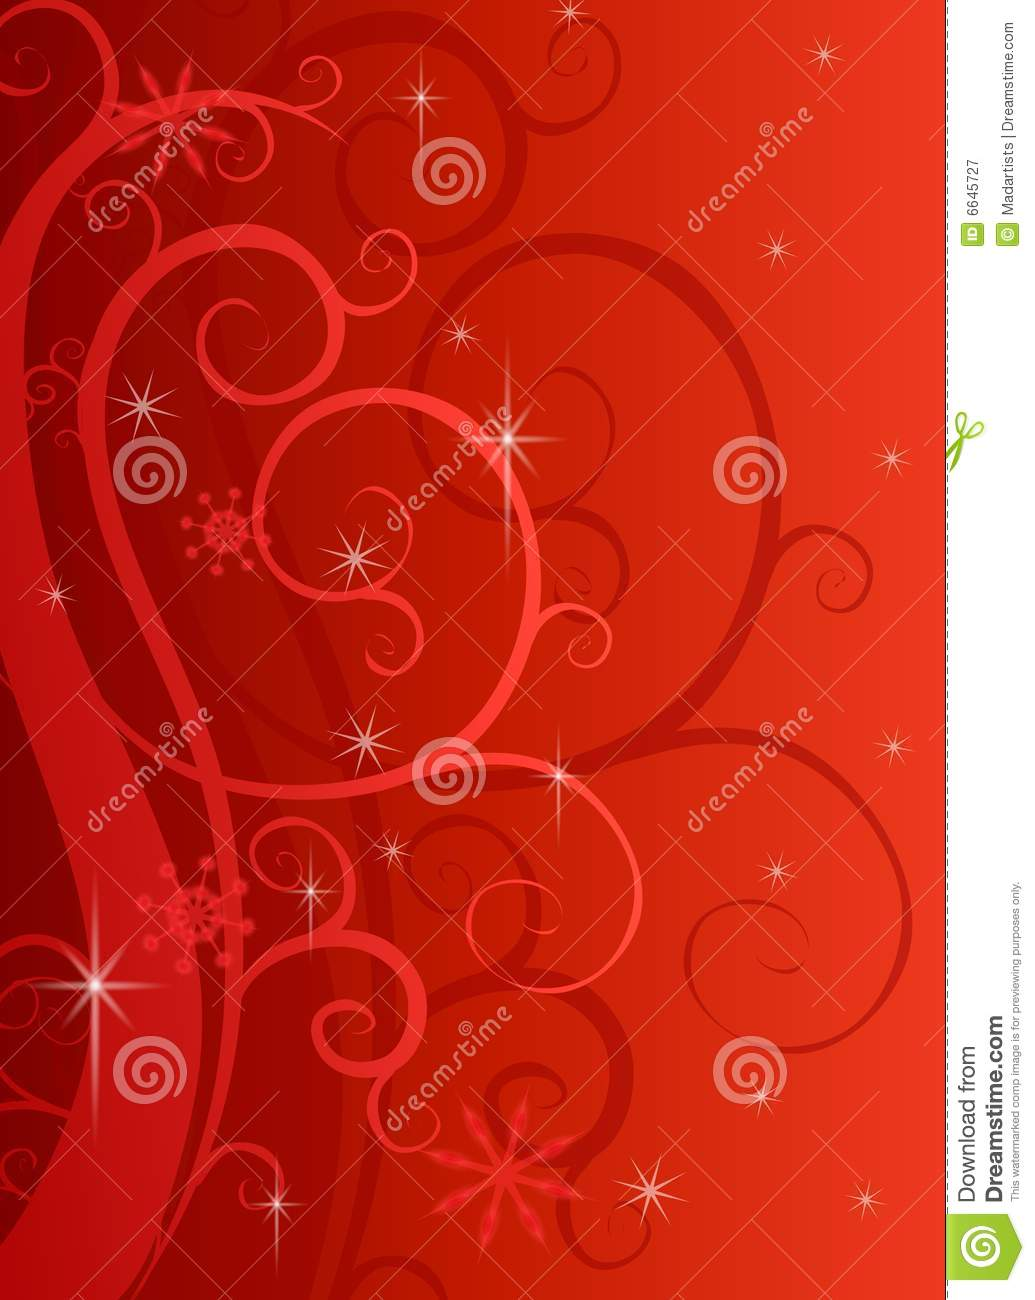 Red Swirls Sparkles Background Royalty Free Stock ...